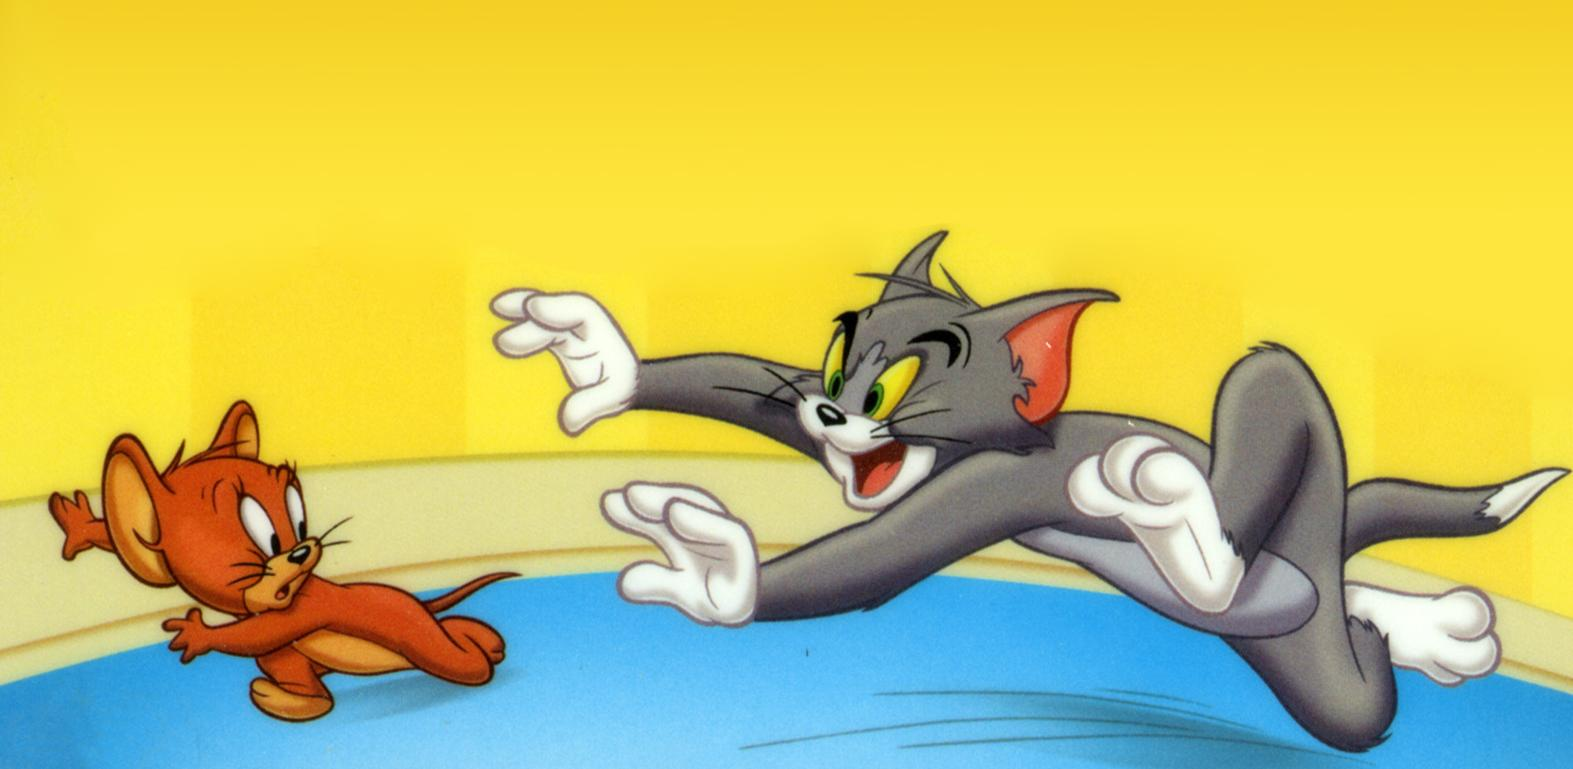 Tom-and-Jerry-Wallpaper-tom-and-jerry-2507494-1600-1200.jpg